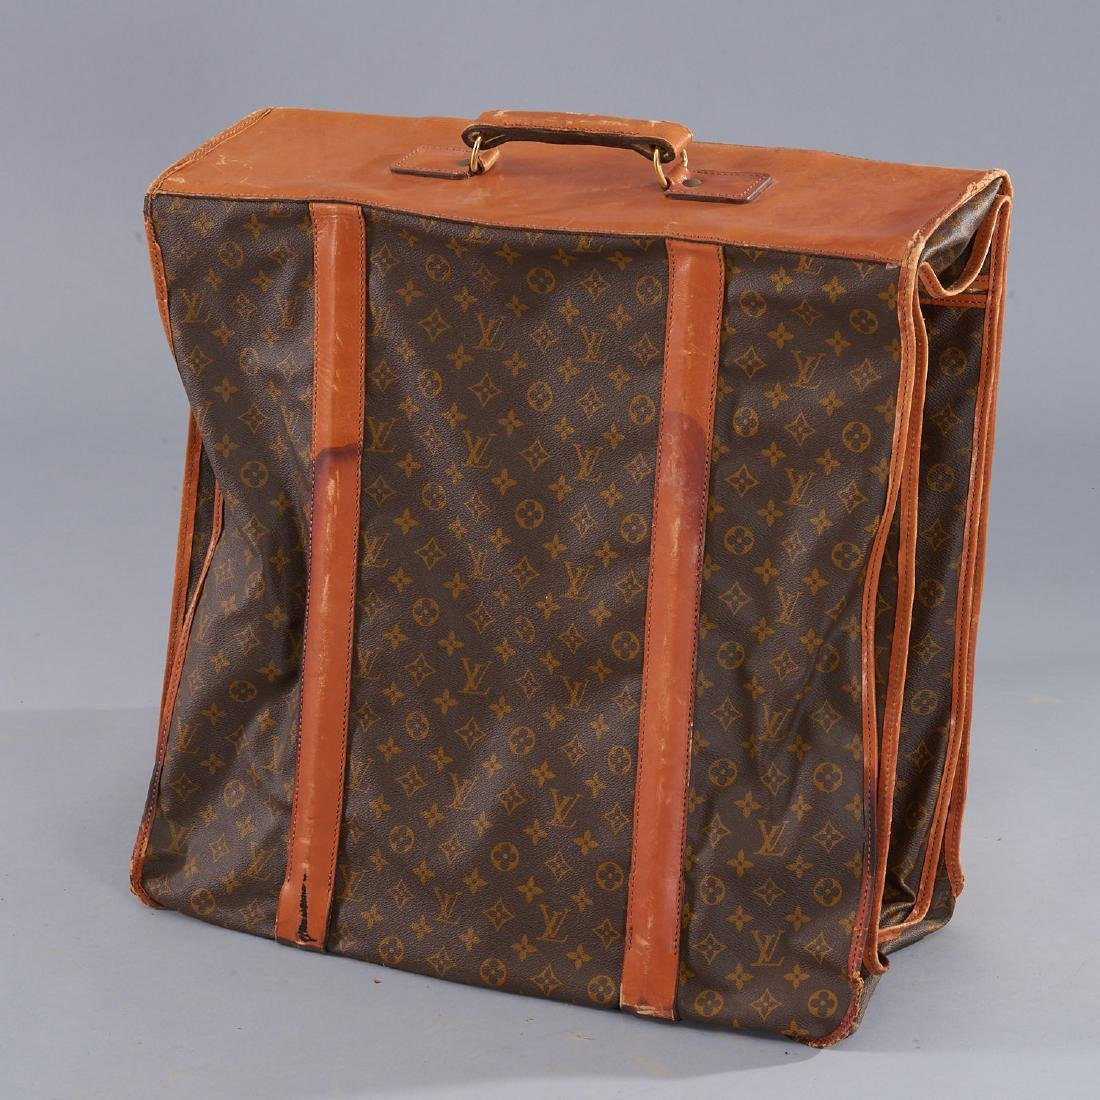 Louis Vuitton Monogram soft sided garment bag